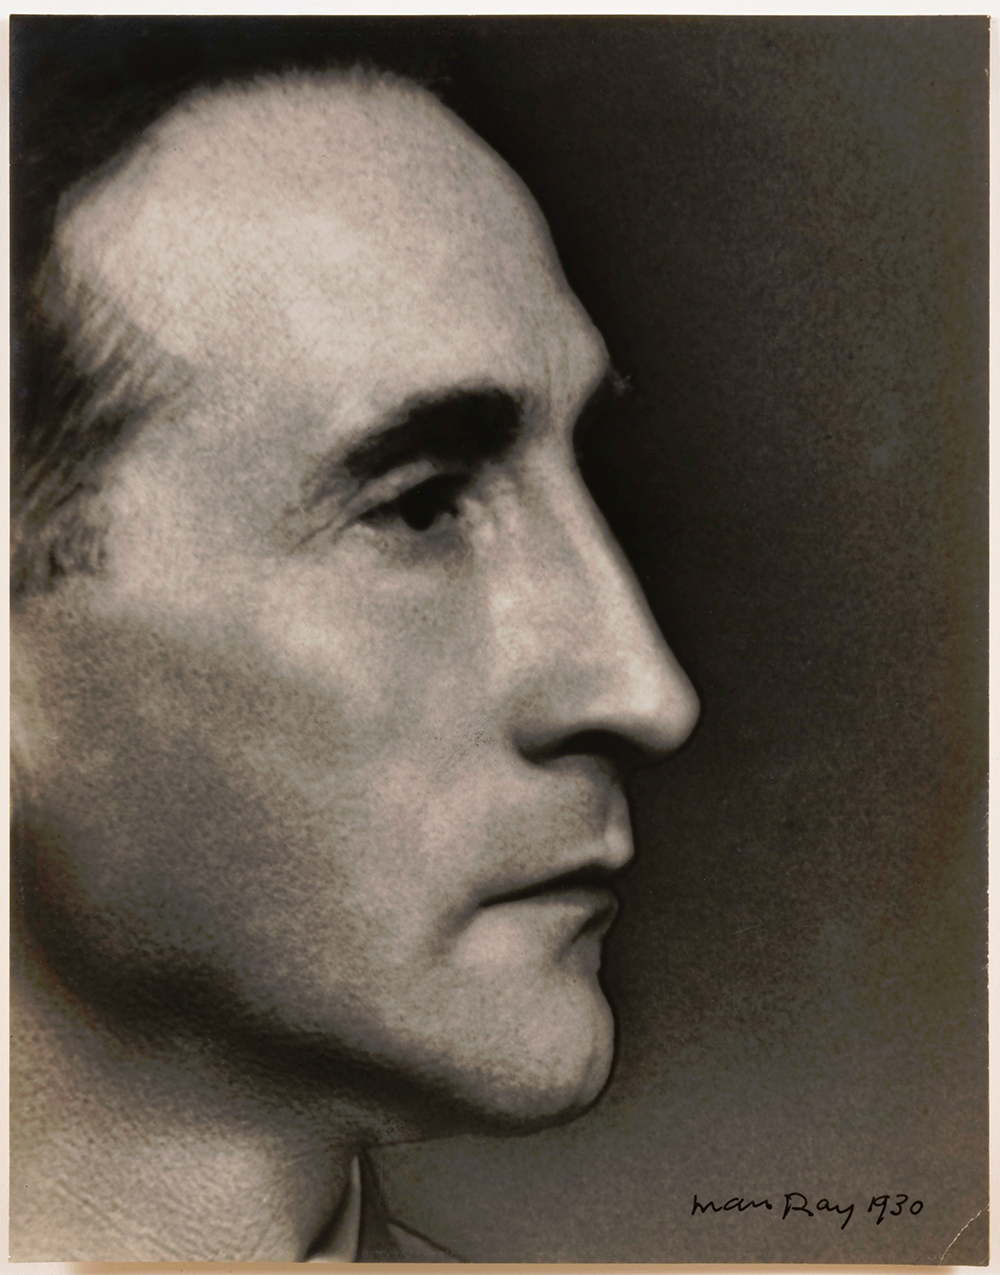 PHOTO: MAN RAY 1930  PORTRAIT: MARCHEL DUCHAMP